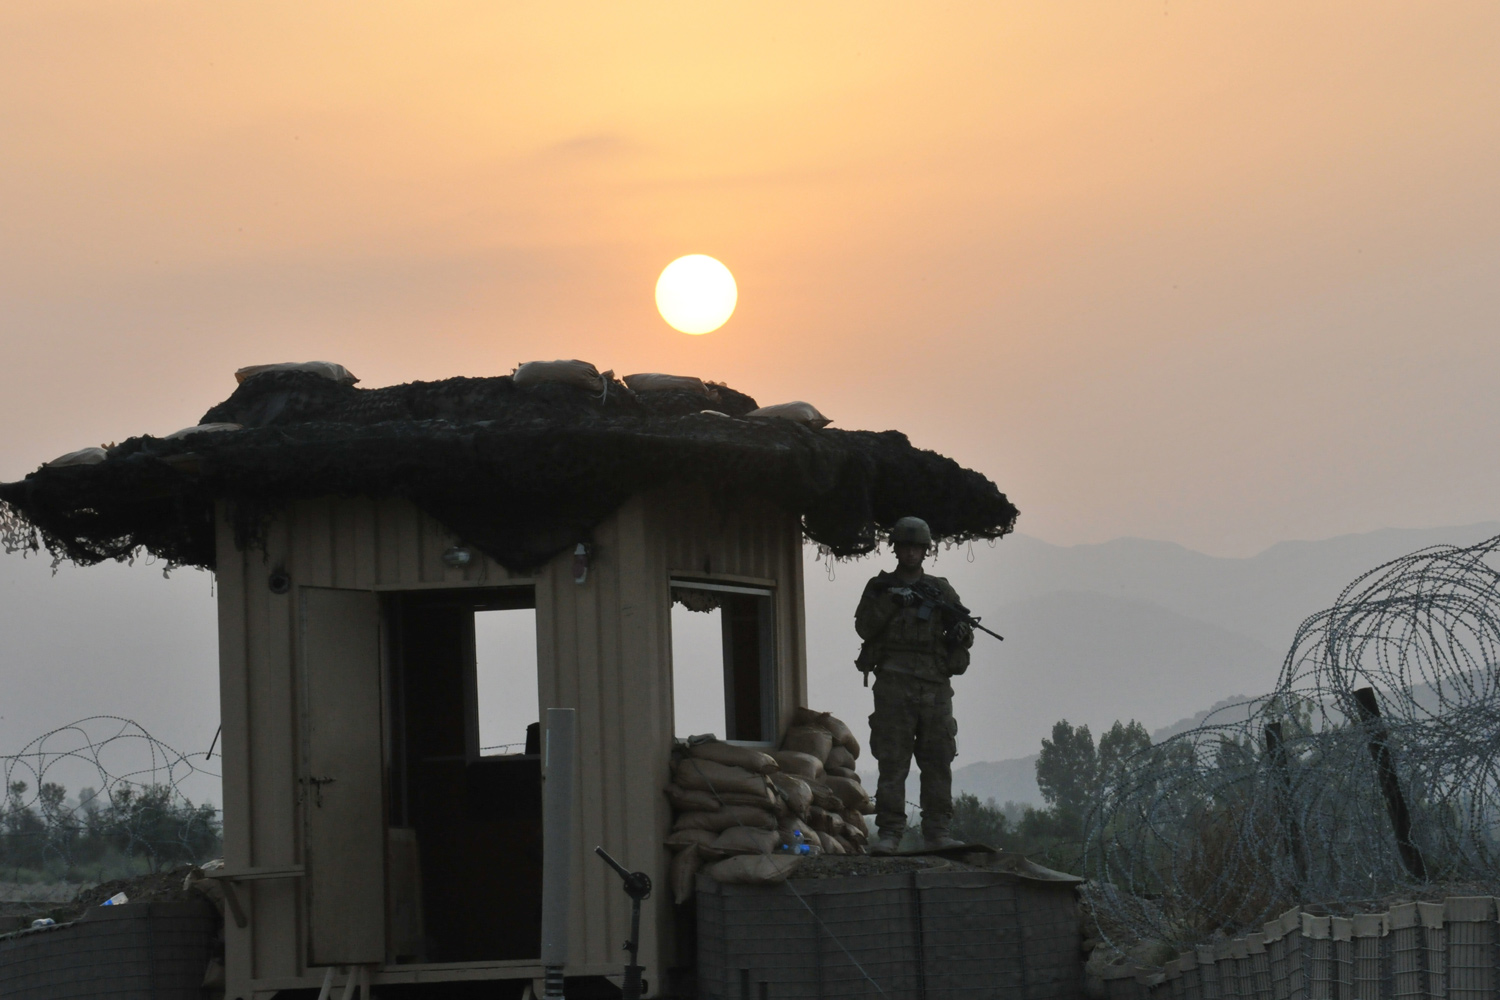 June 23, 2011. A U.S. soldier stands on a guard tower as the sun rises at Combat Outpost (COP) Sabari in Khost province in the east of Afghanistan.